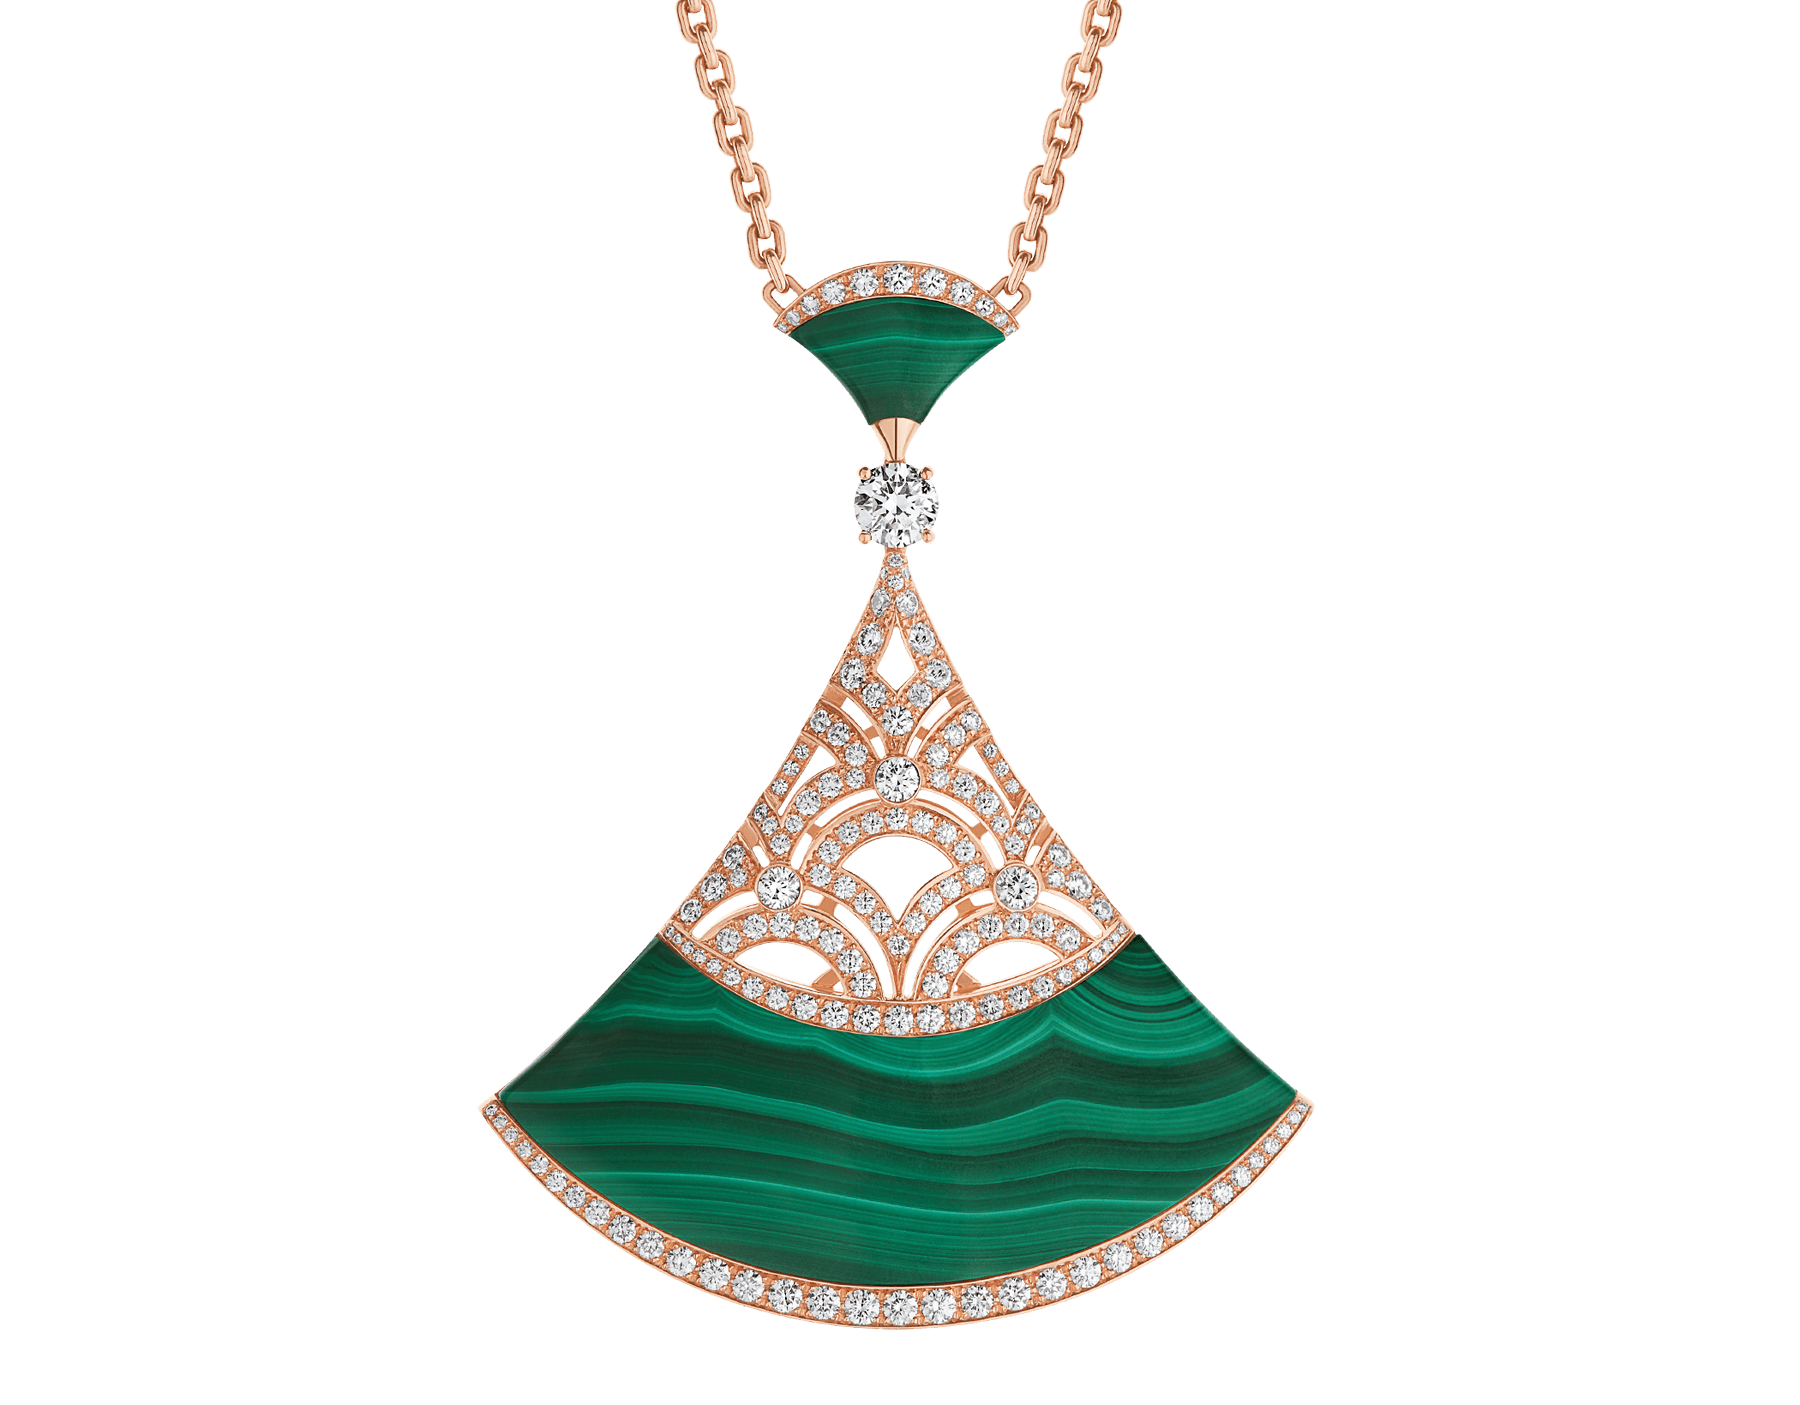 Divas' Dream necklace with 18 kt rose gold chain set with malachite beads and diamonds, and 18 kt rose gold openwork pendant set with a diamond (0.50 ct), pavé diamonds and malachite inserts. Special edition exclusive to Middle East 358222 image 1